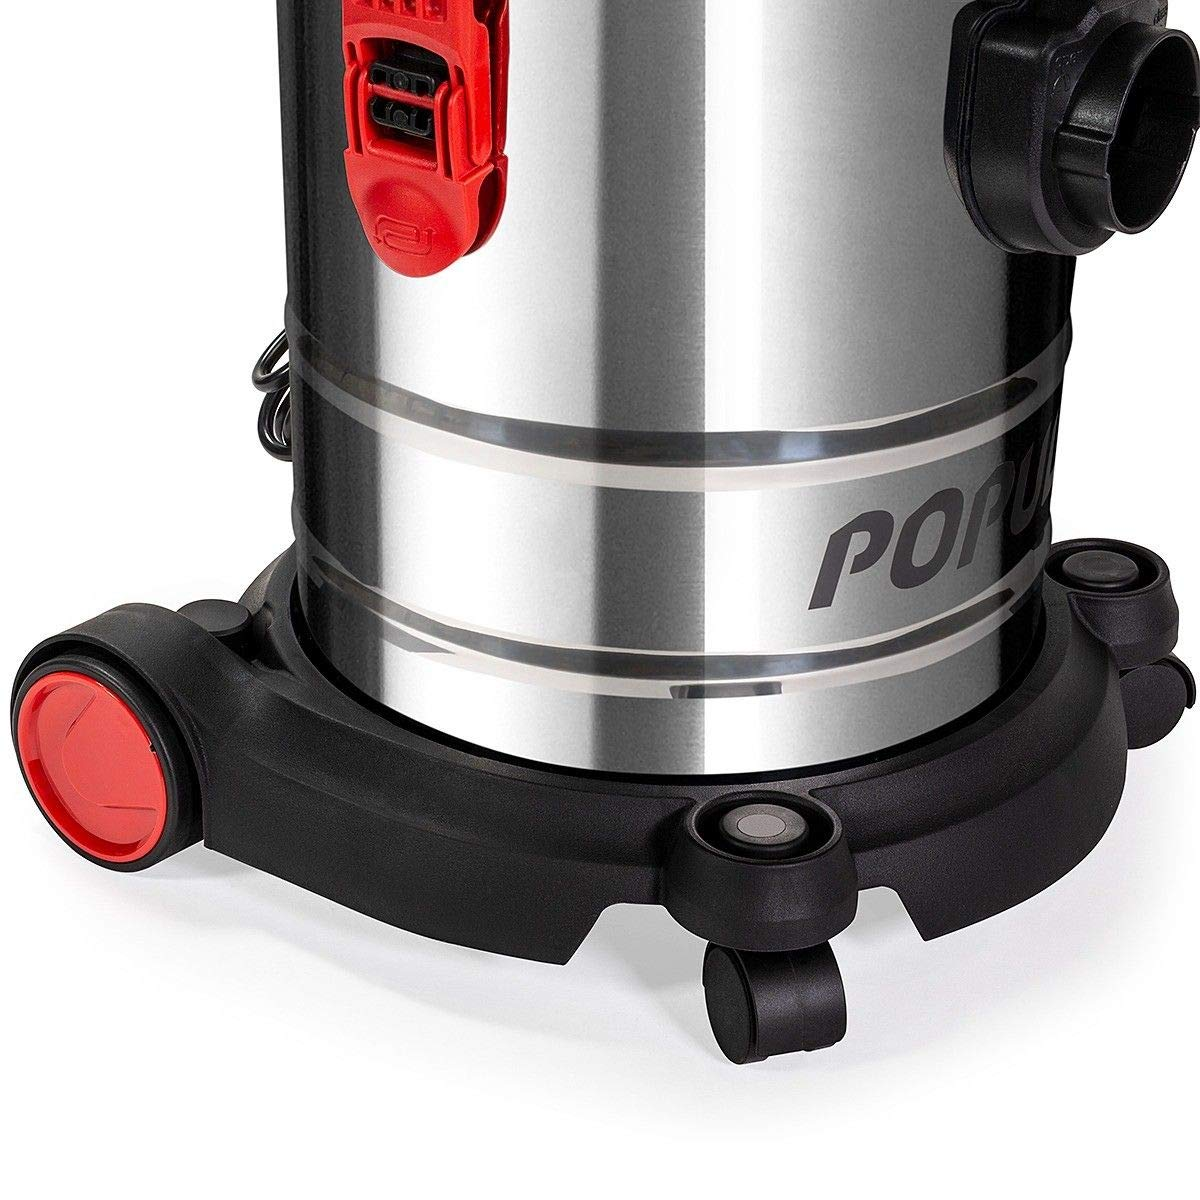 Populo 5.5 Peak HP 5 Gallon Wet and Dry Vacuum Stainless Steel Bucket 3-Functions Vacuum Dry/Wet/Blow with Wheel by populo (Image #3)